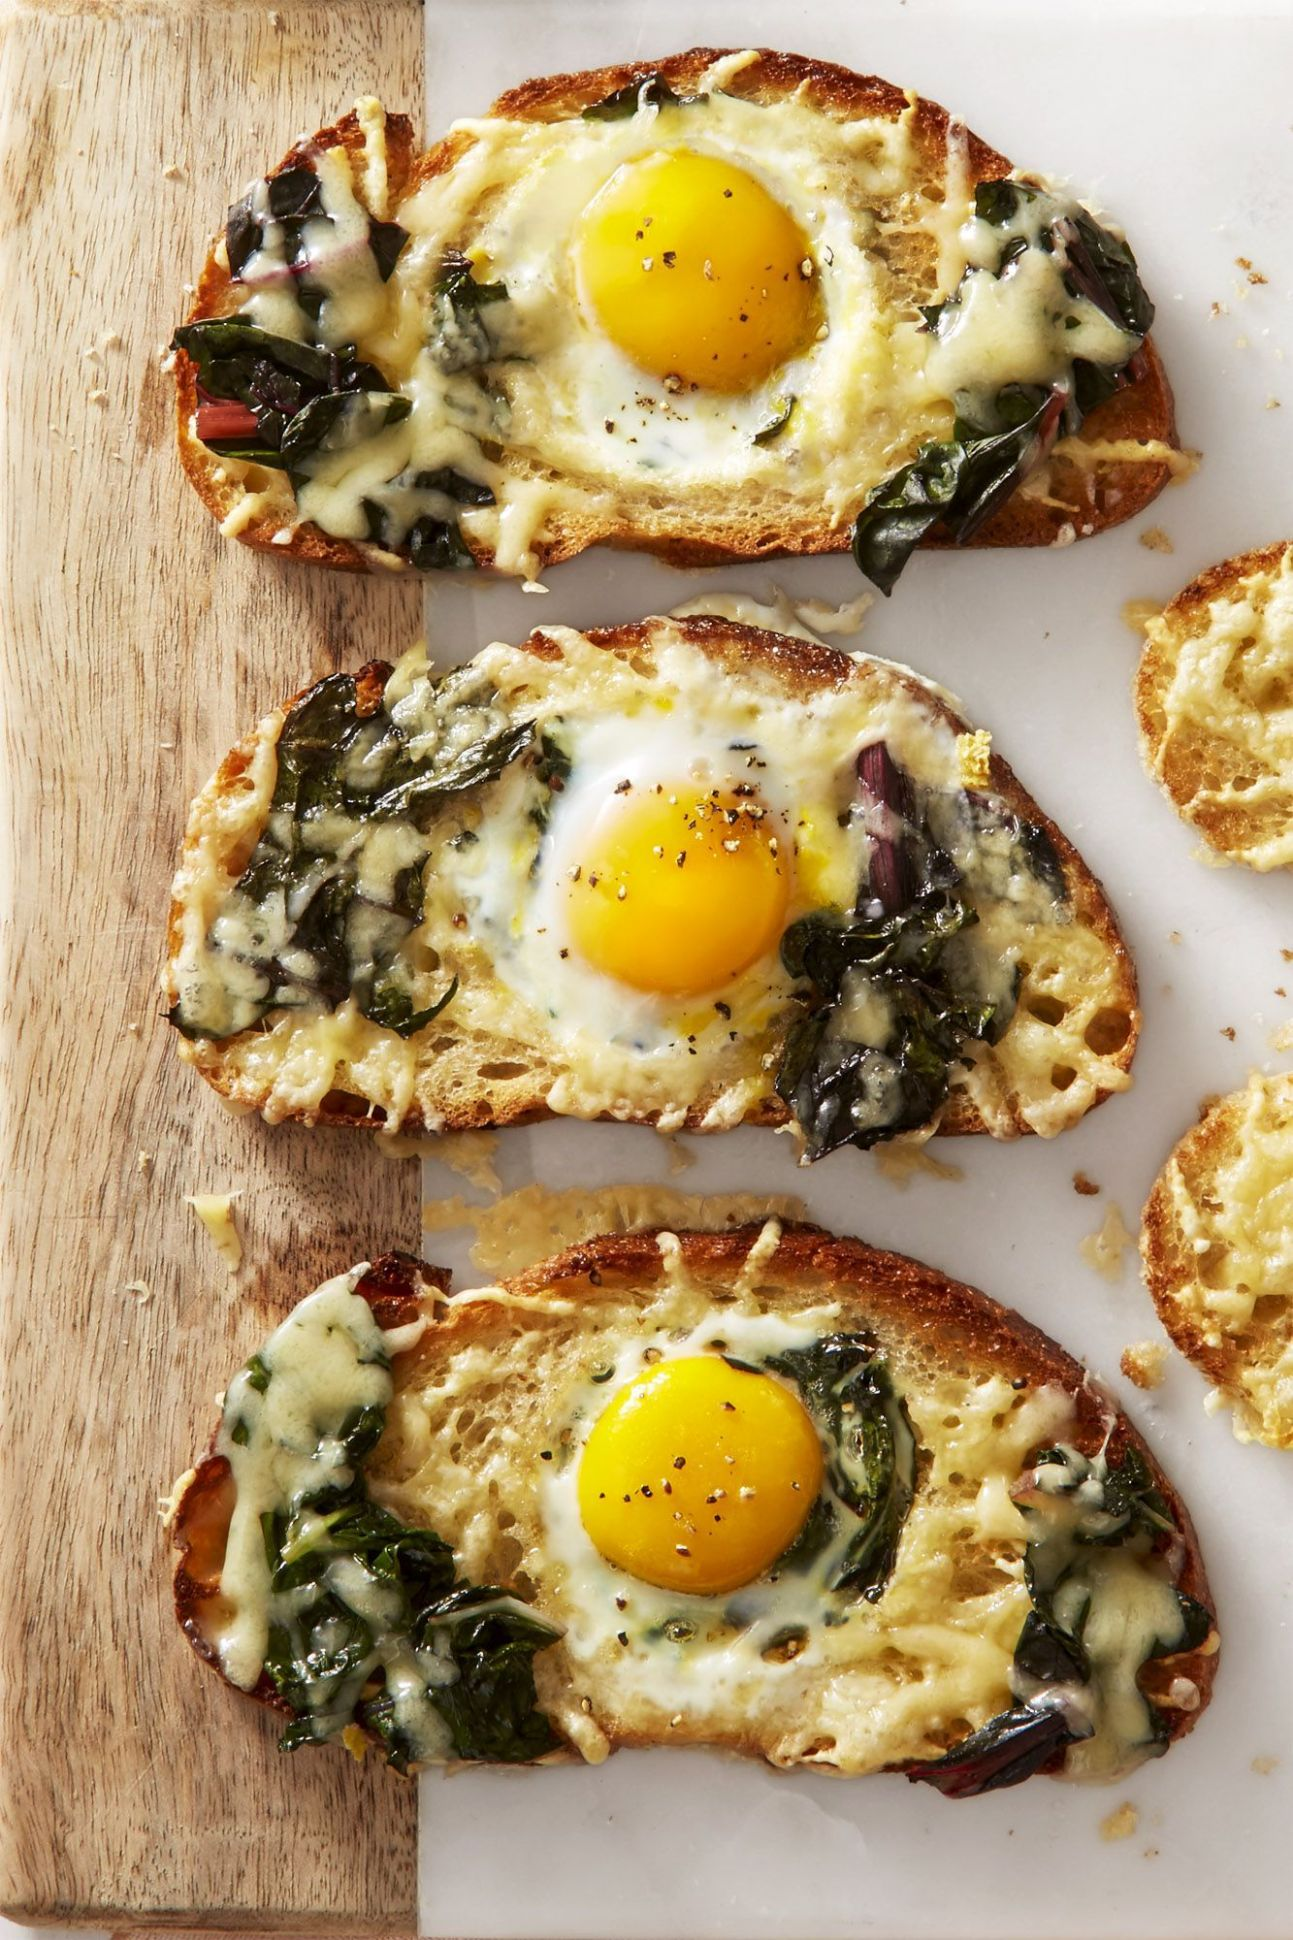 11+ Easy Egg Recipes - Ways to Cook Eggs for Breakfast - Egg Recipes Uk